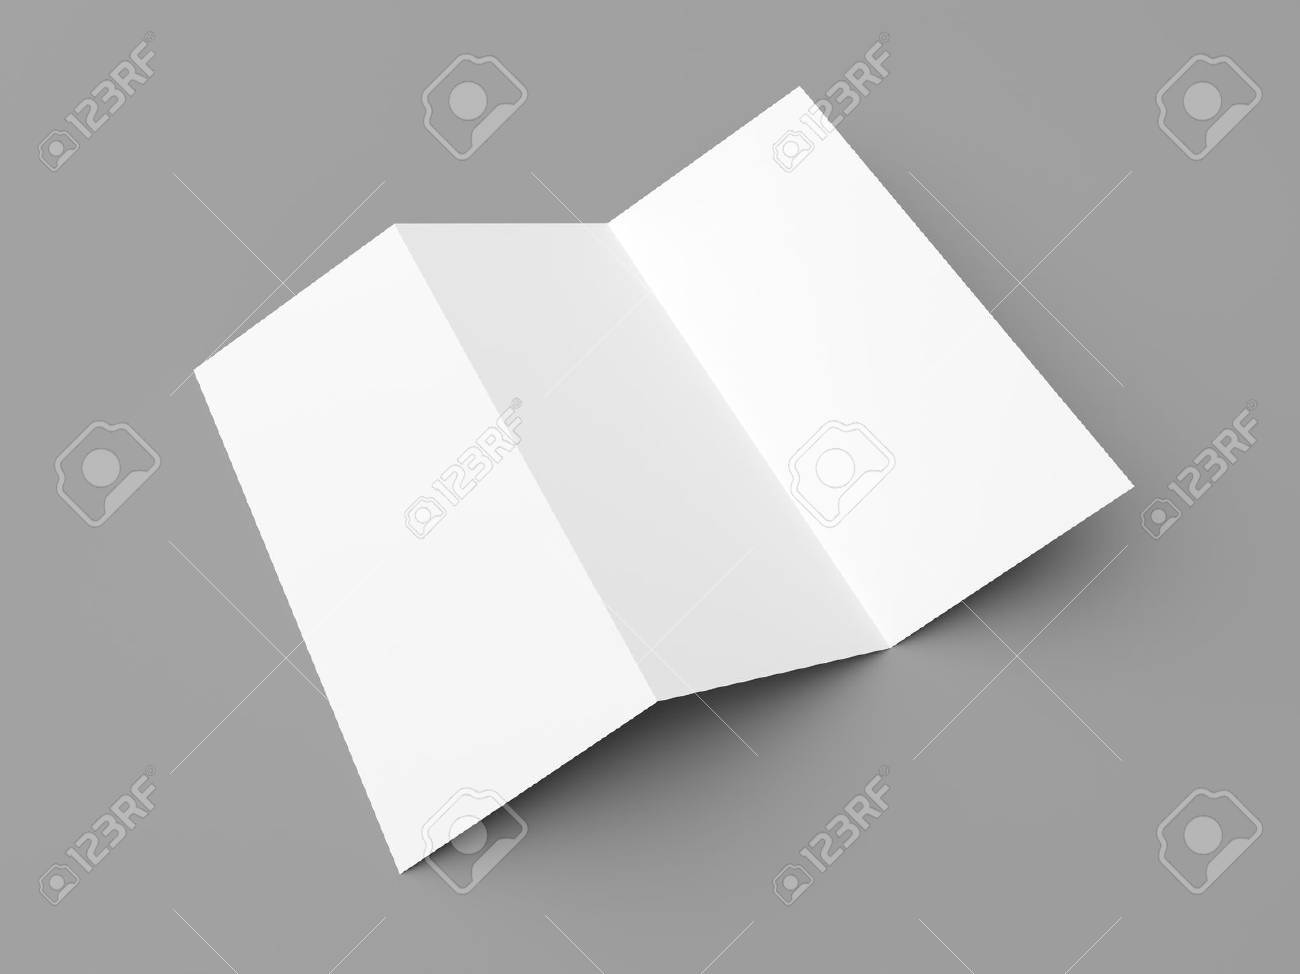 leaflet blank tri fold white paper brochure mockup on grey background stock photo 43667265